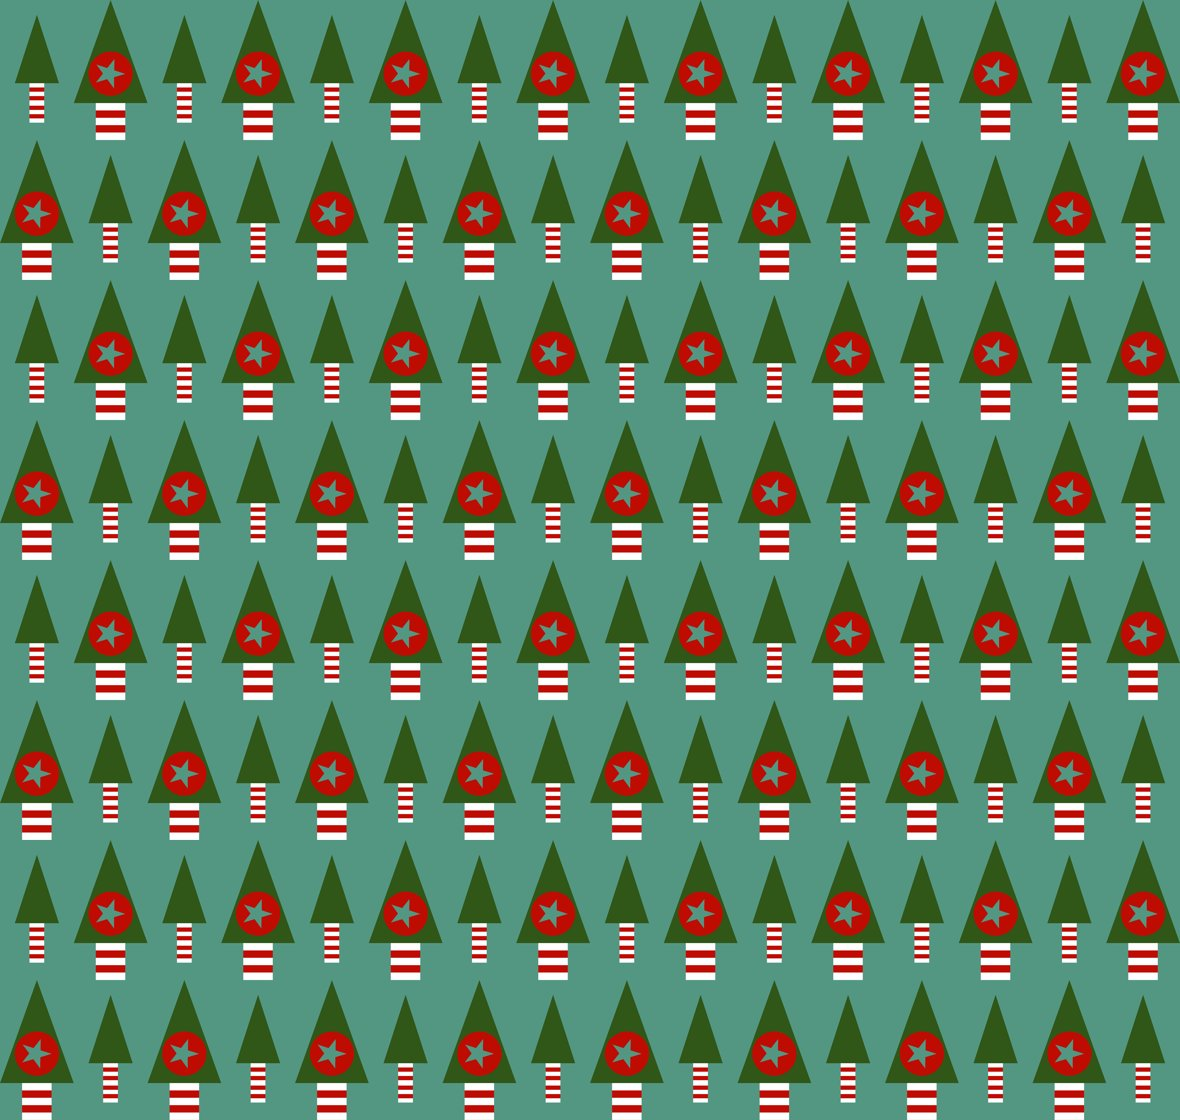 Rrretro_christmas_trees_shop_preview